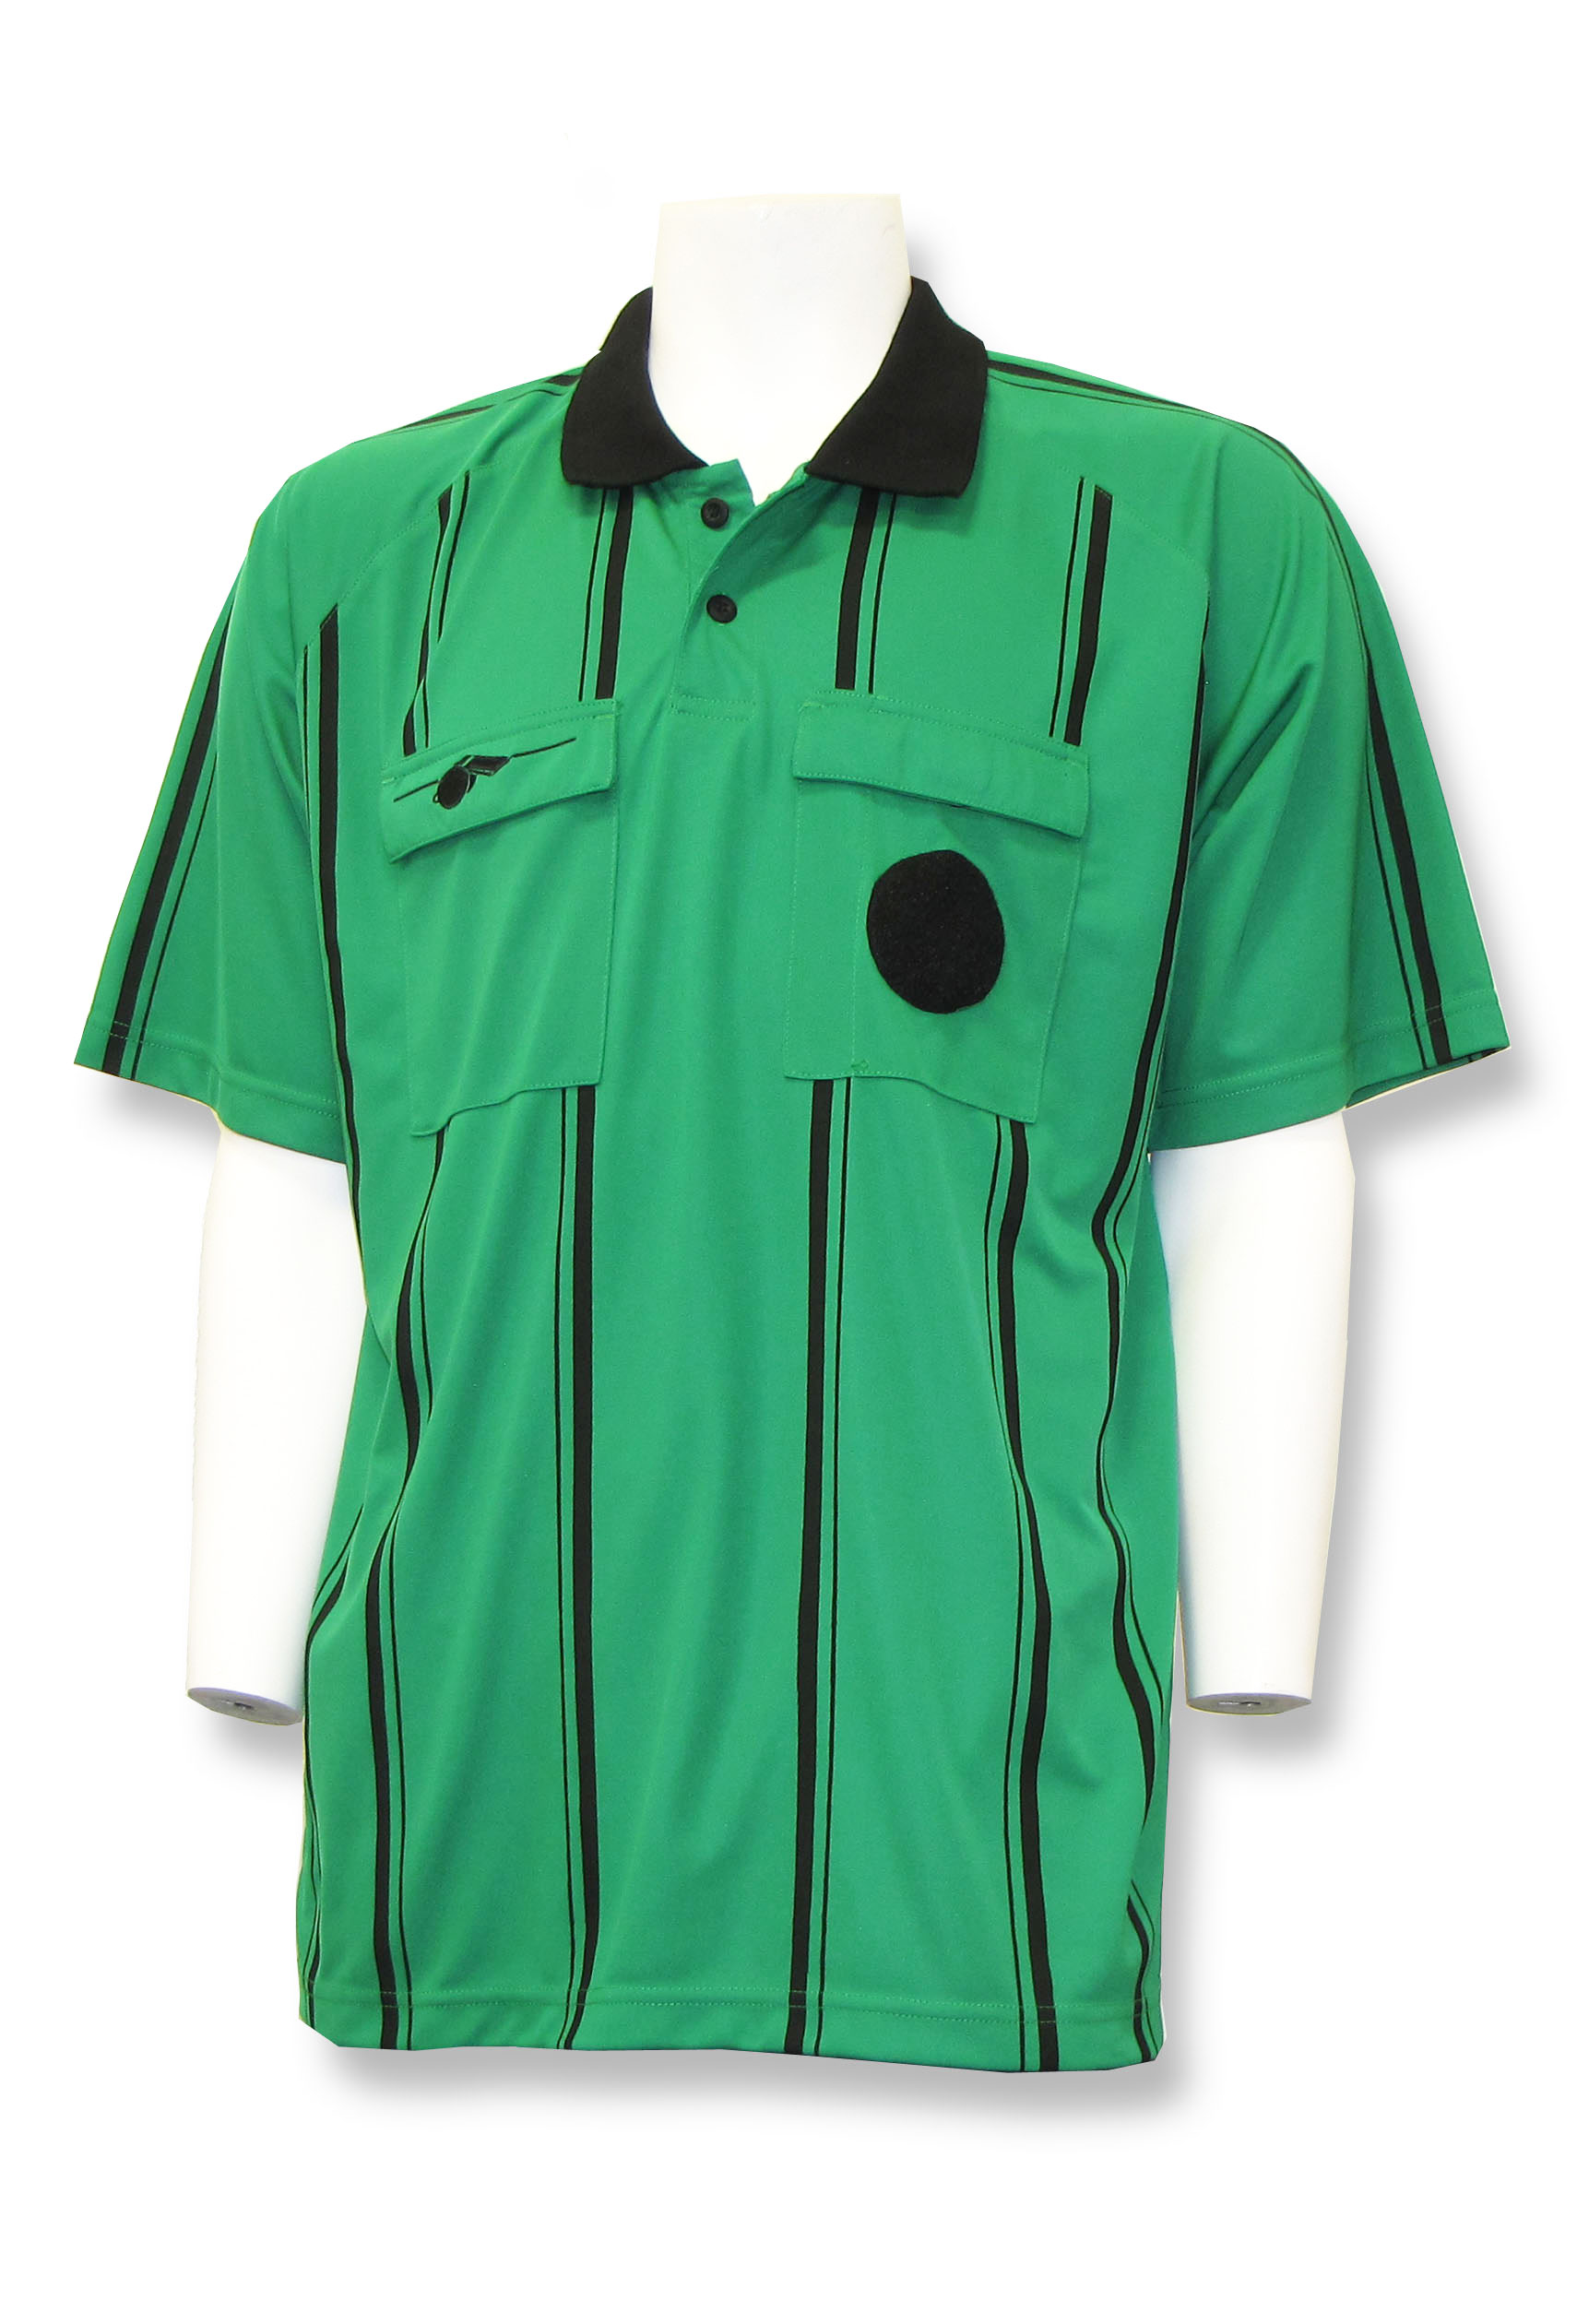 Short sleeve soccer referee jersey by Whistleline in green